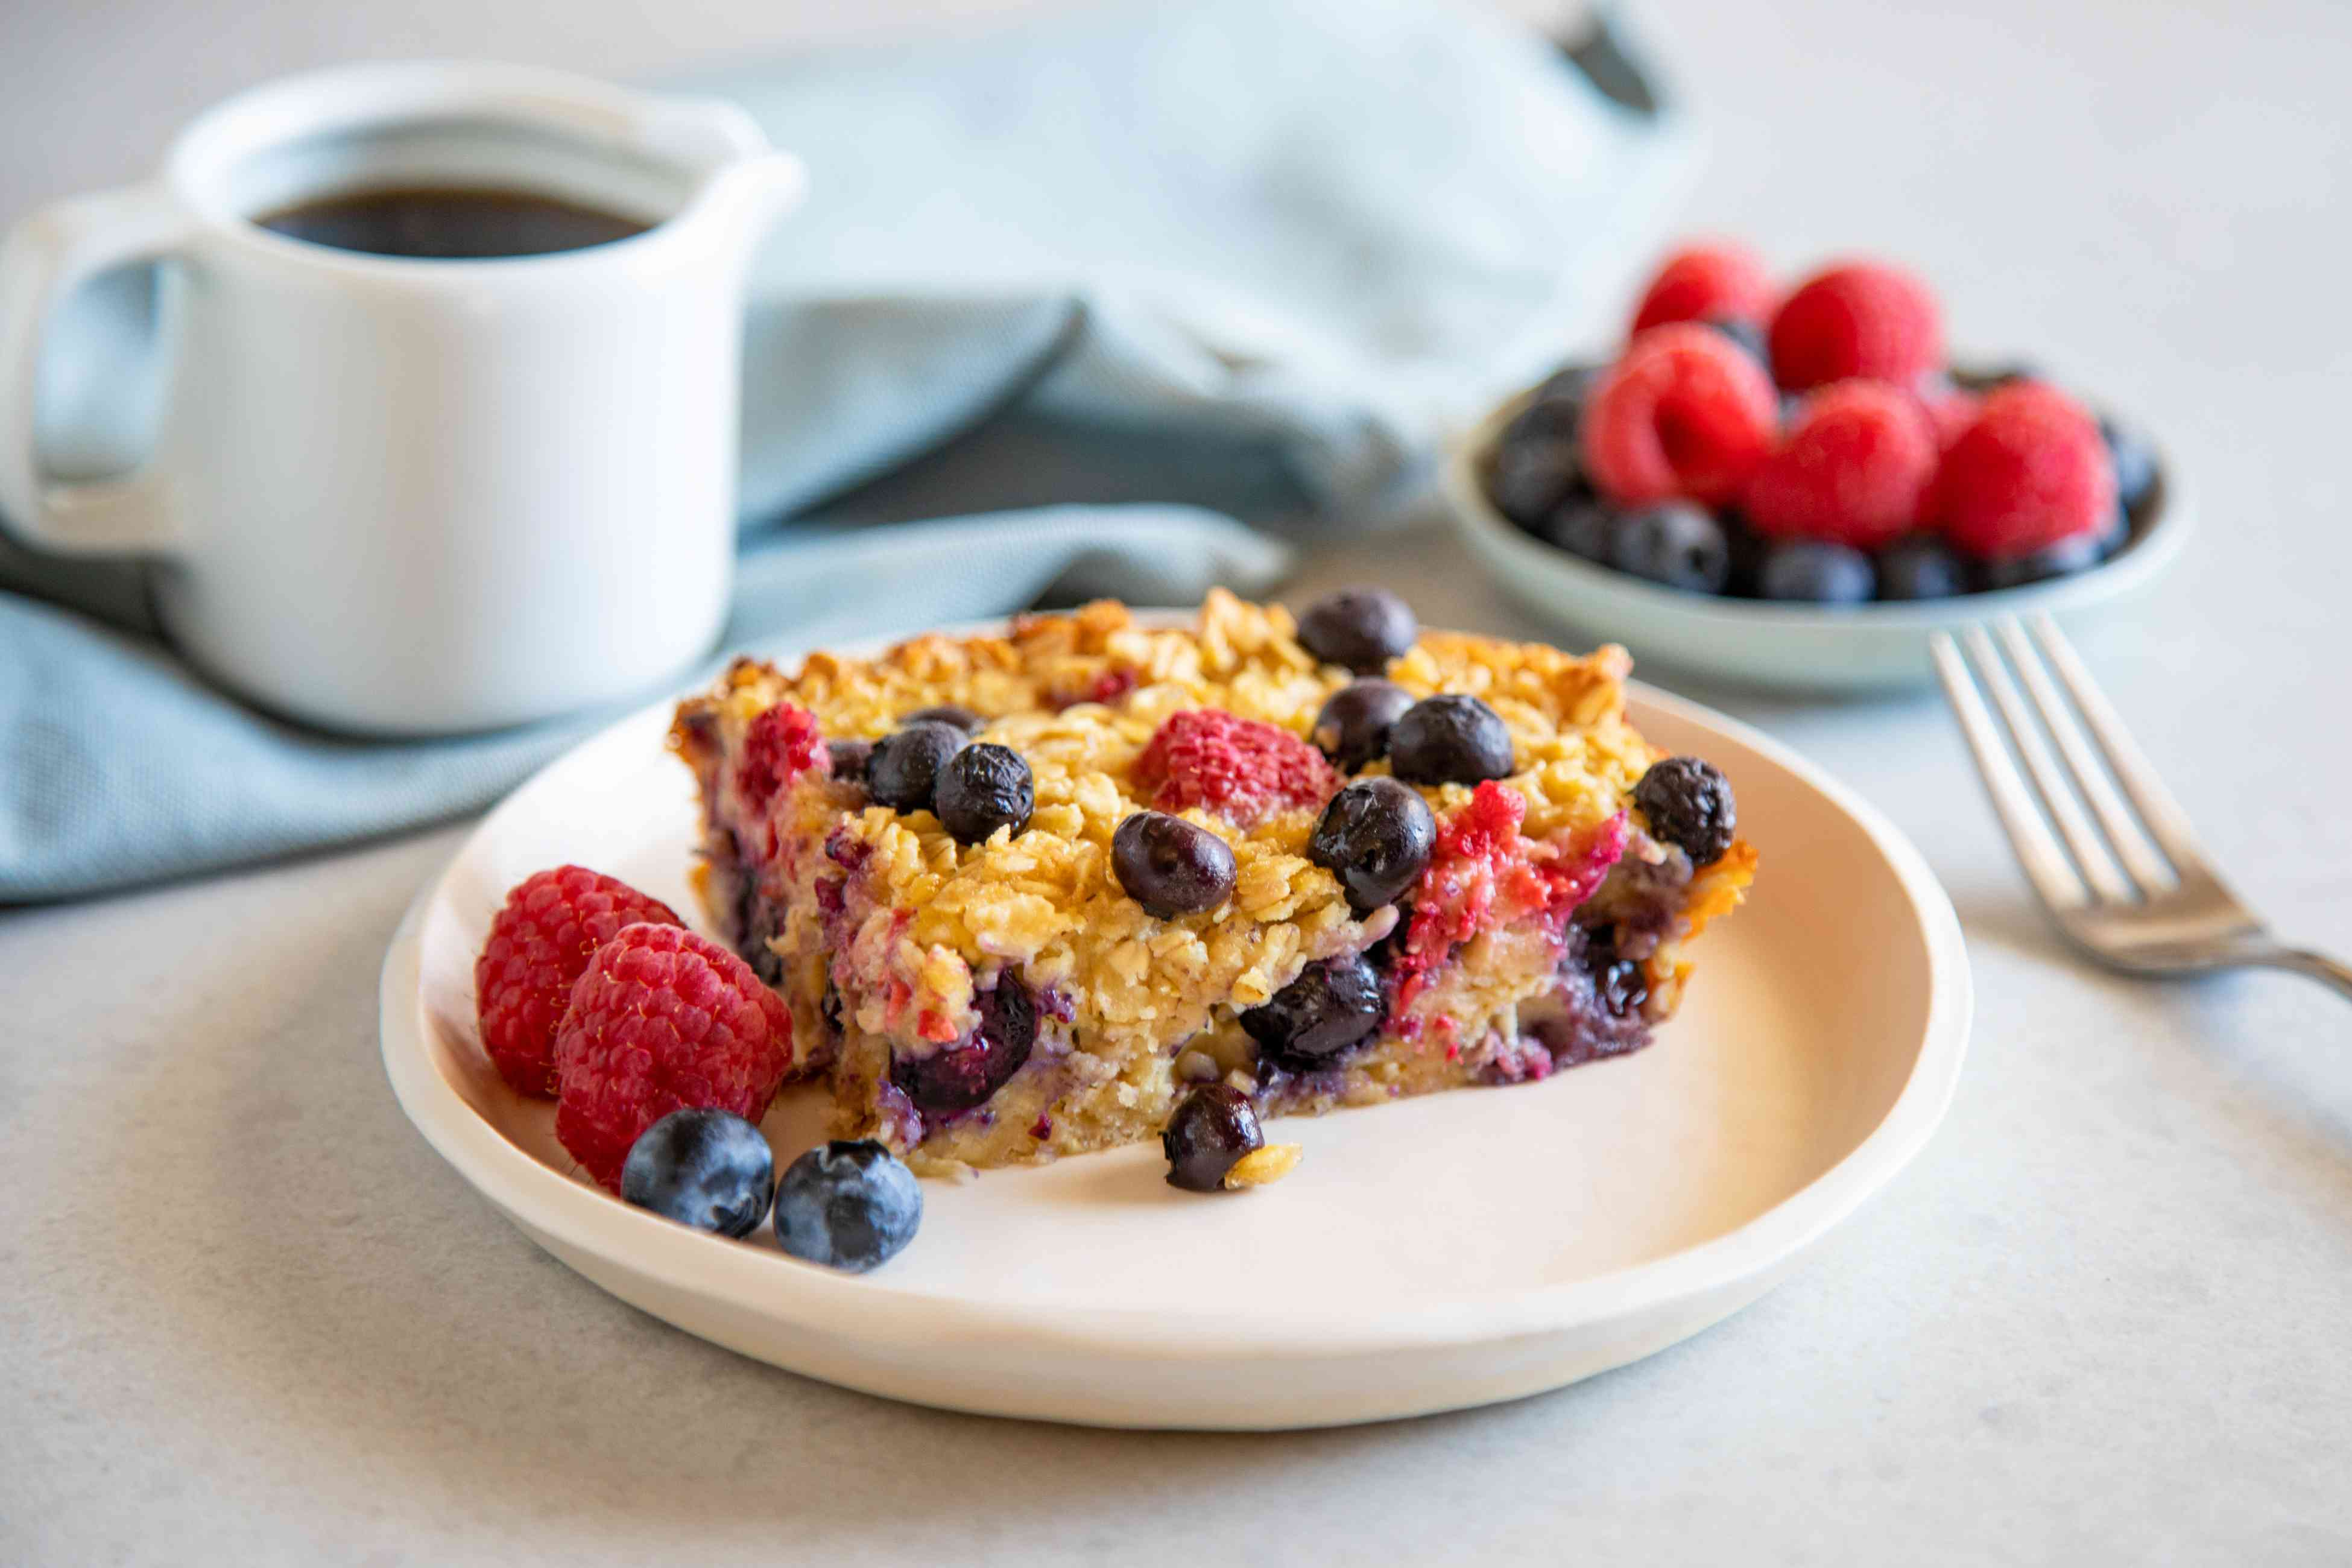 Gluten-Free Baked Oatmeal served on a plate and sprinkled with berries.